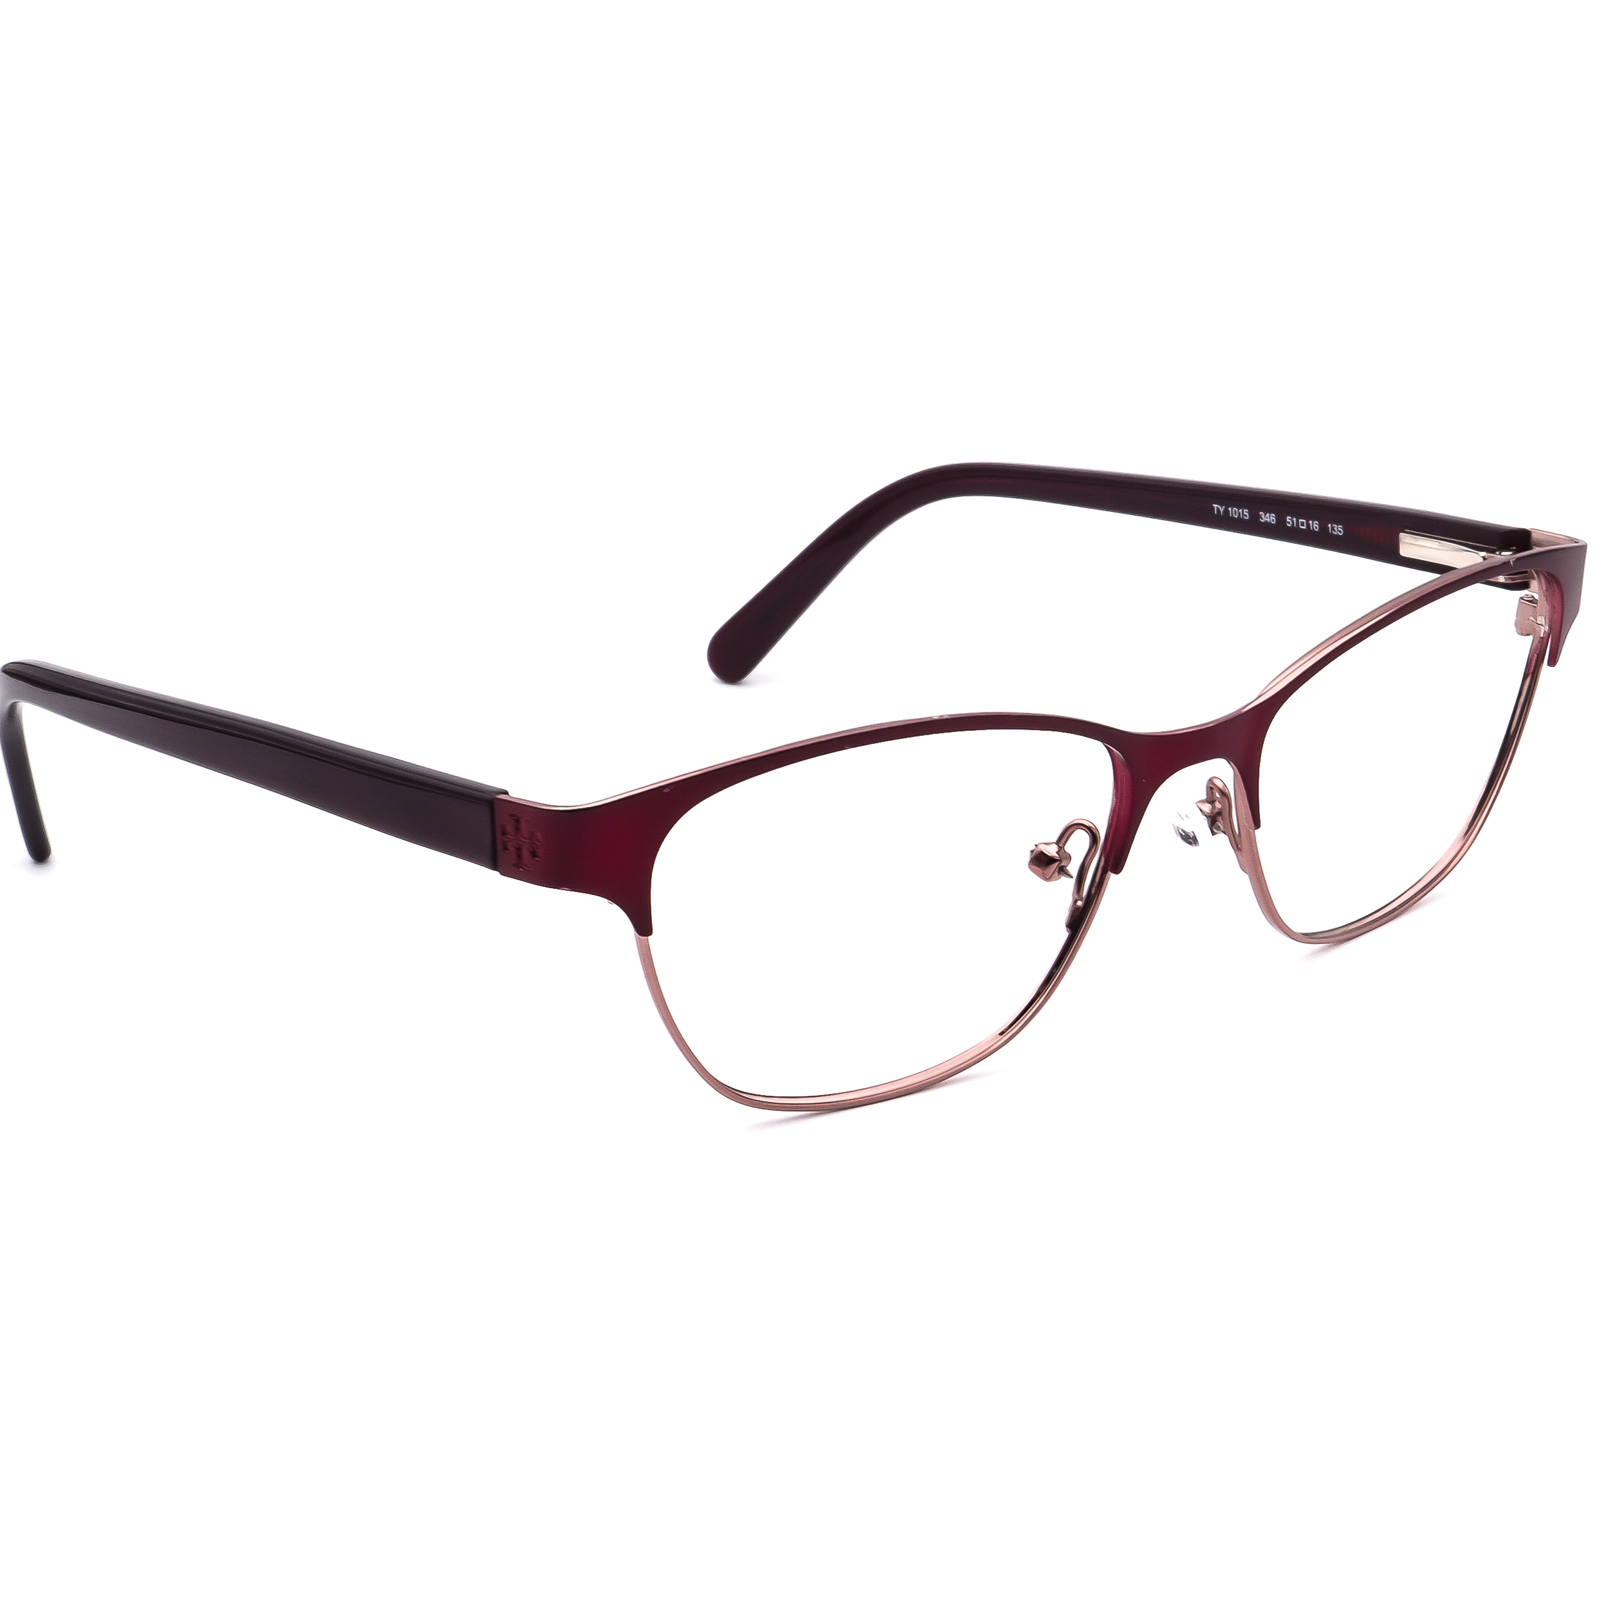 Tory Burch TY 1015  Eyeglasses